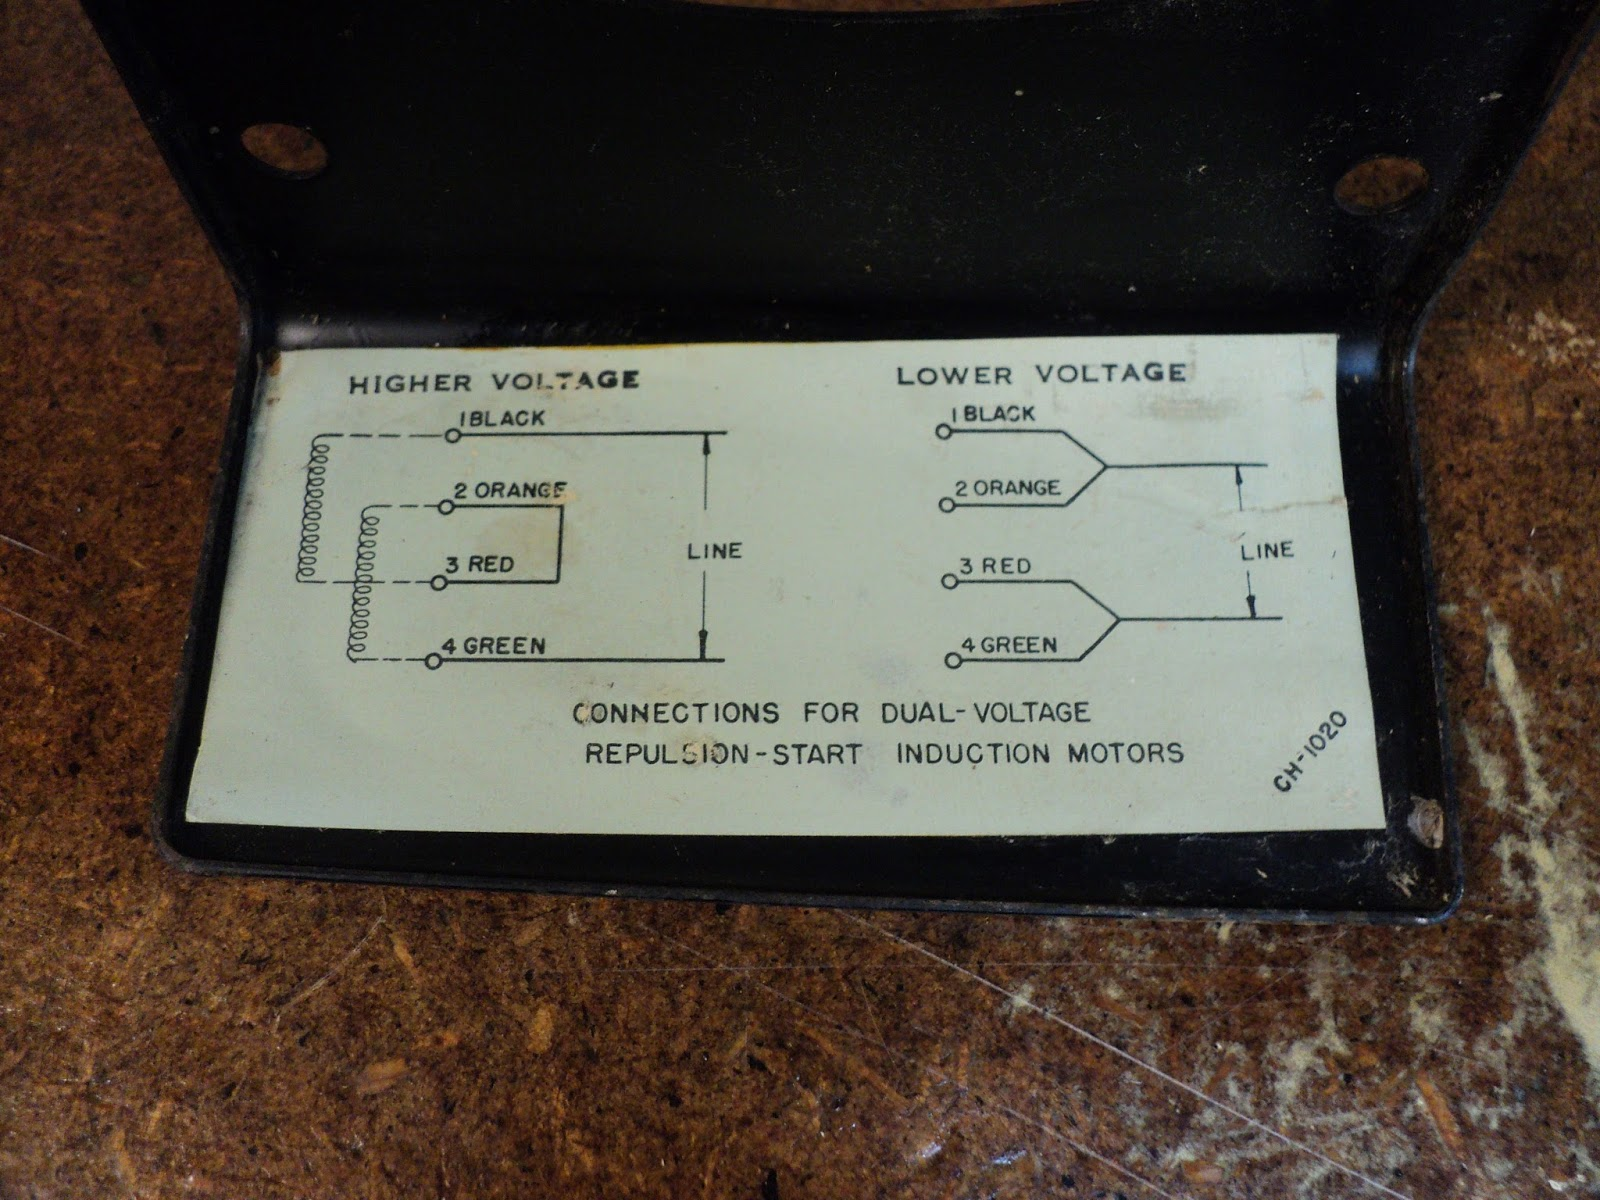 Electric Drill Motor Wiring Diagram Rouge River Workshop An Antique Wagner 1 2 Hp